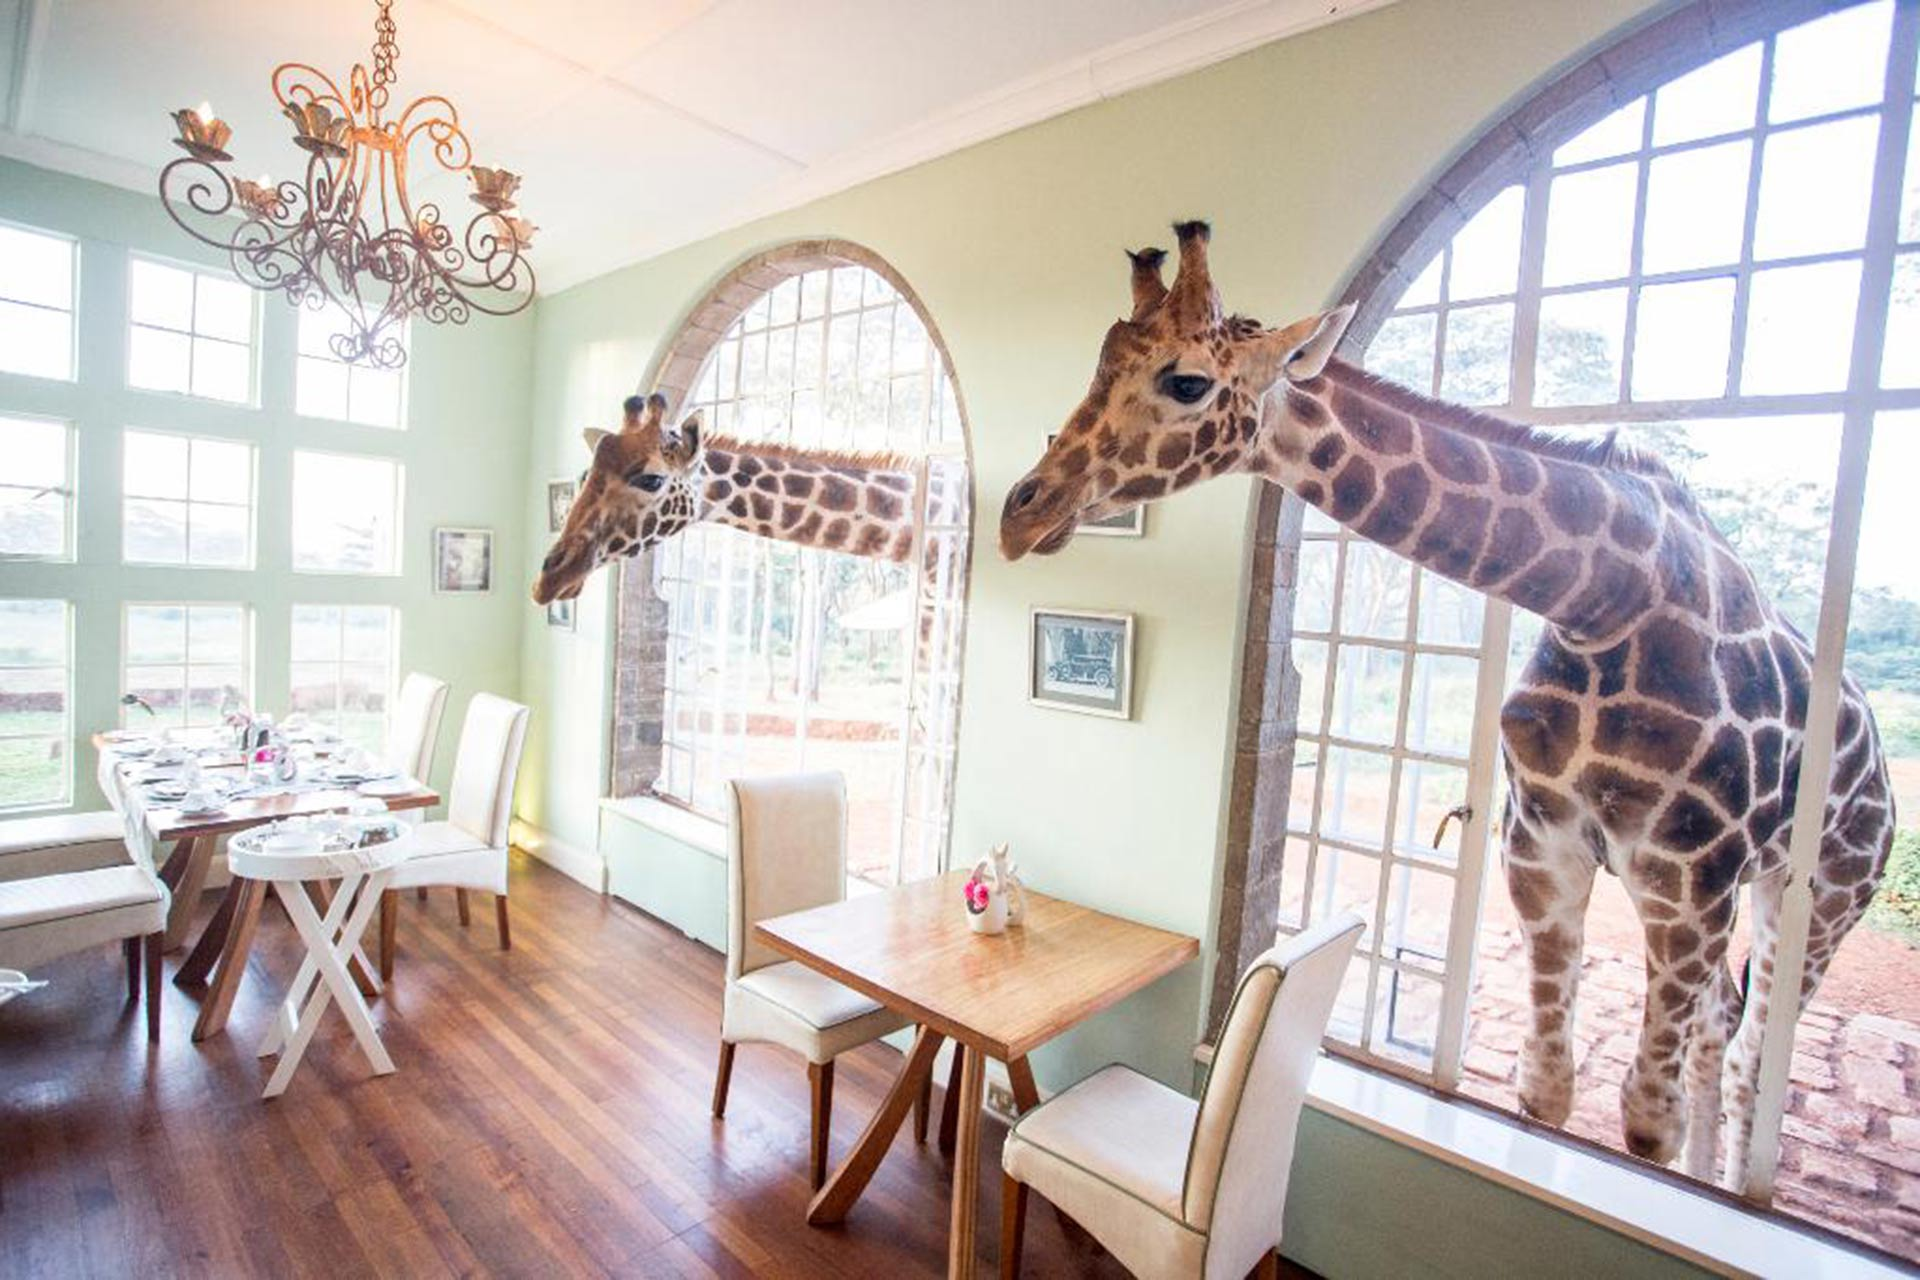 Giraffe Manor; Courtesy of Giraffe Manor